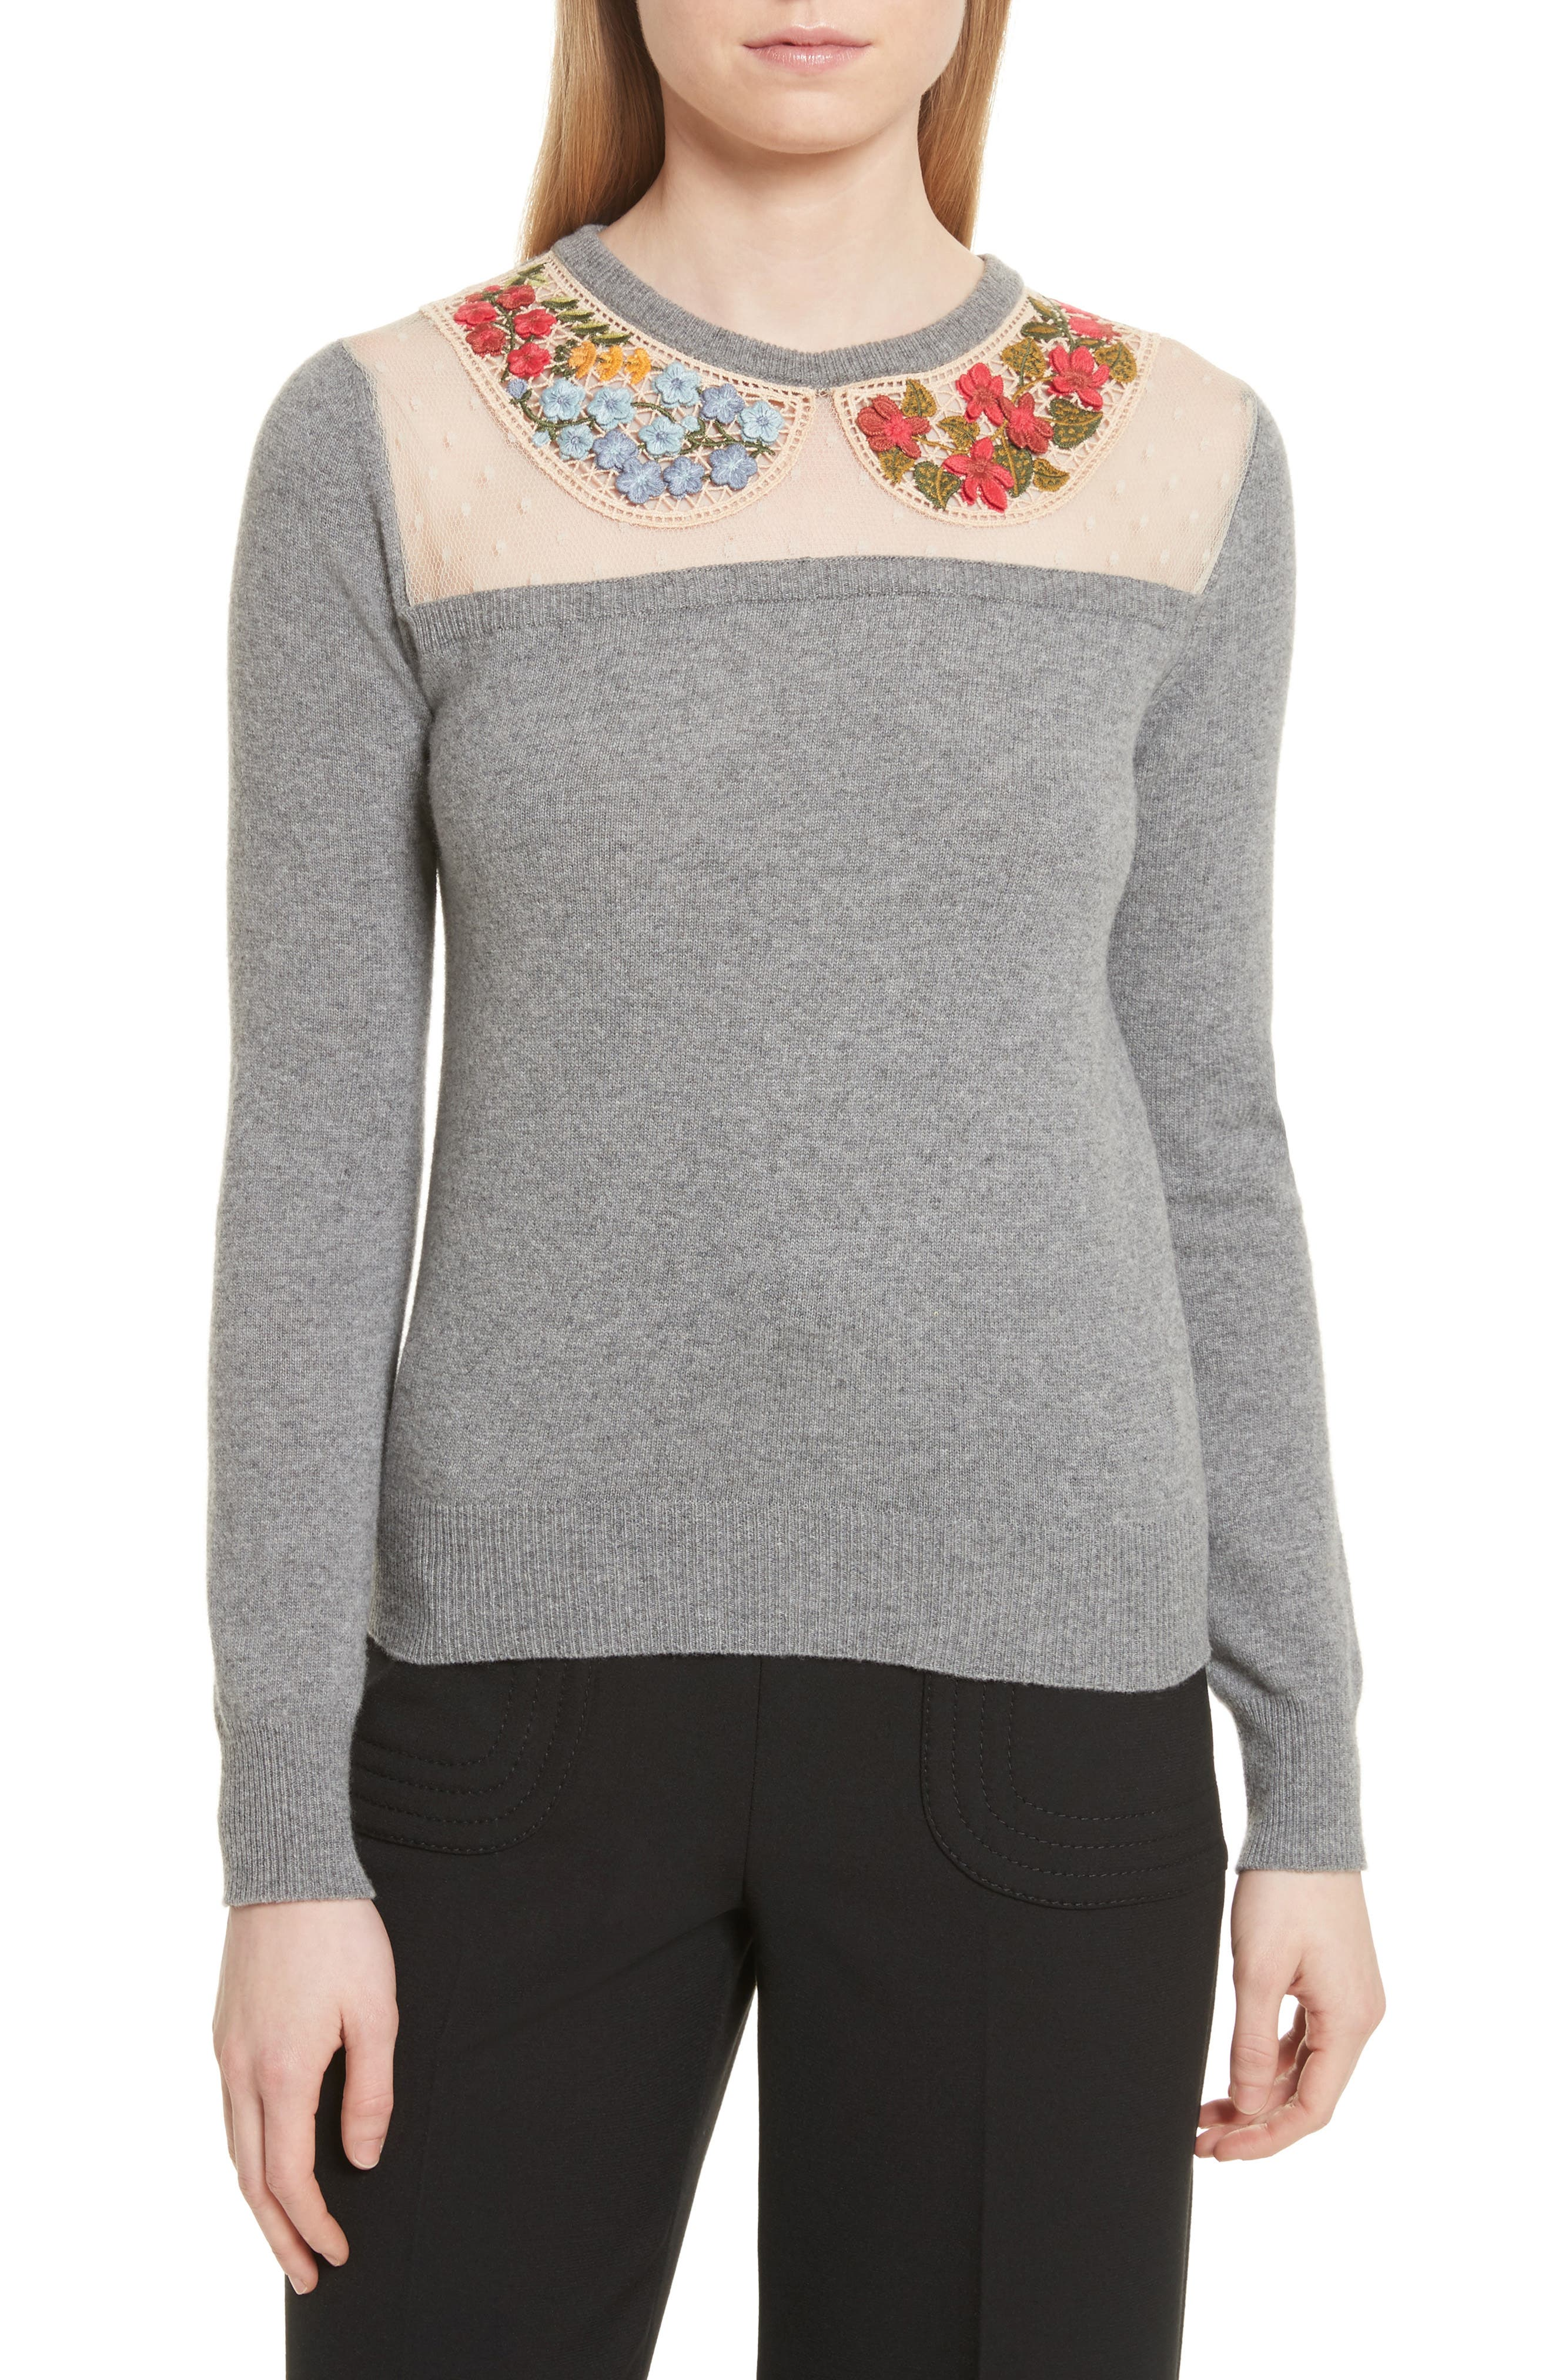 Alternate Image 1 Selected - RED Valentino Macramé & Floral Embellished Wool Sweater